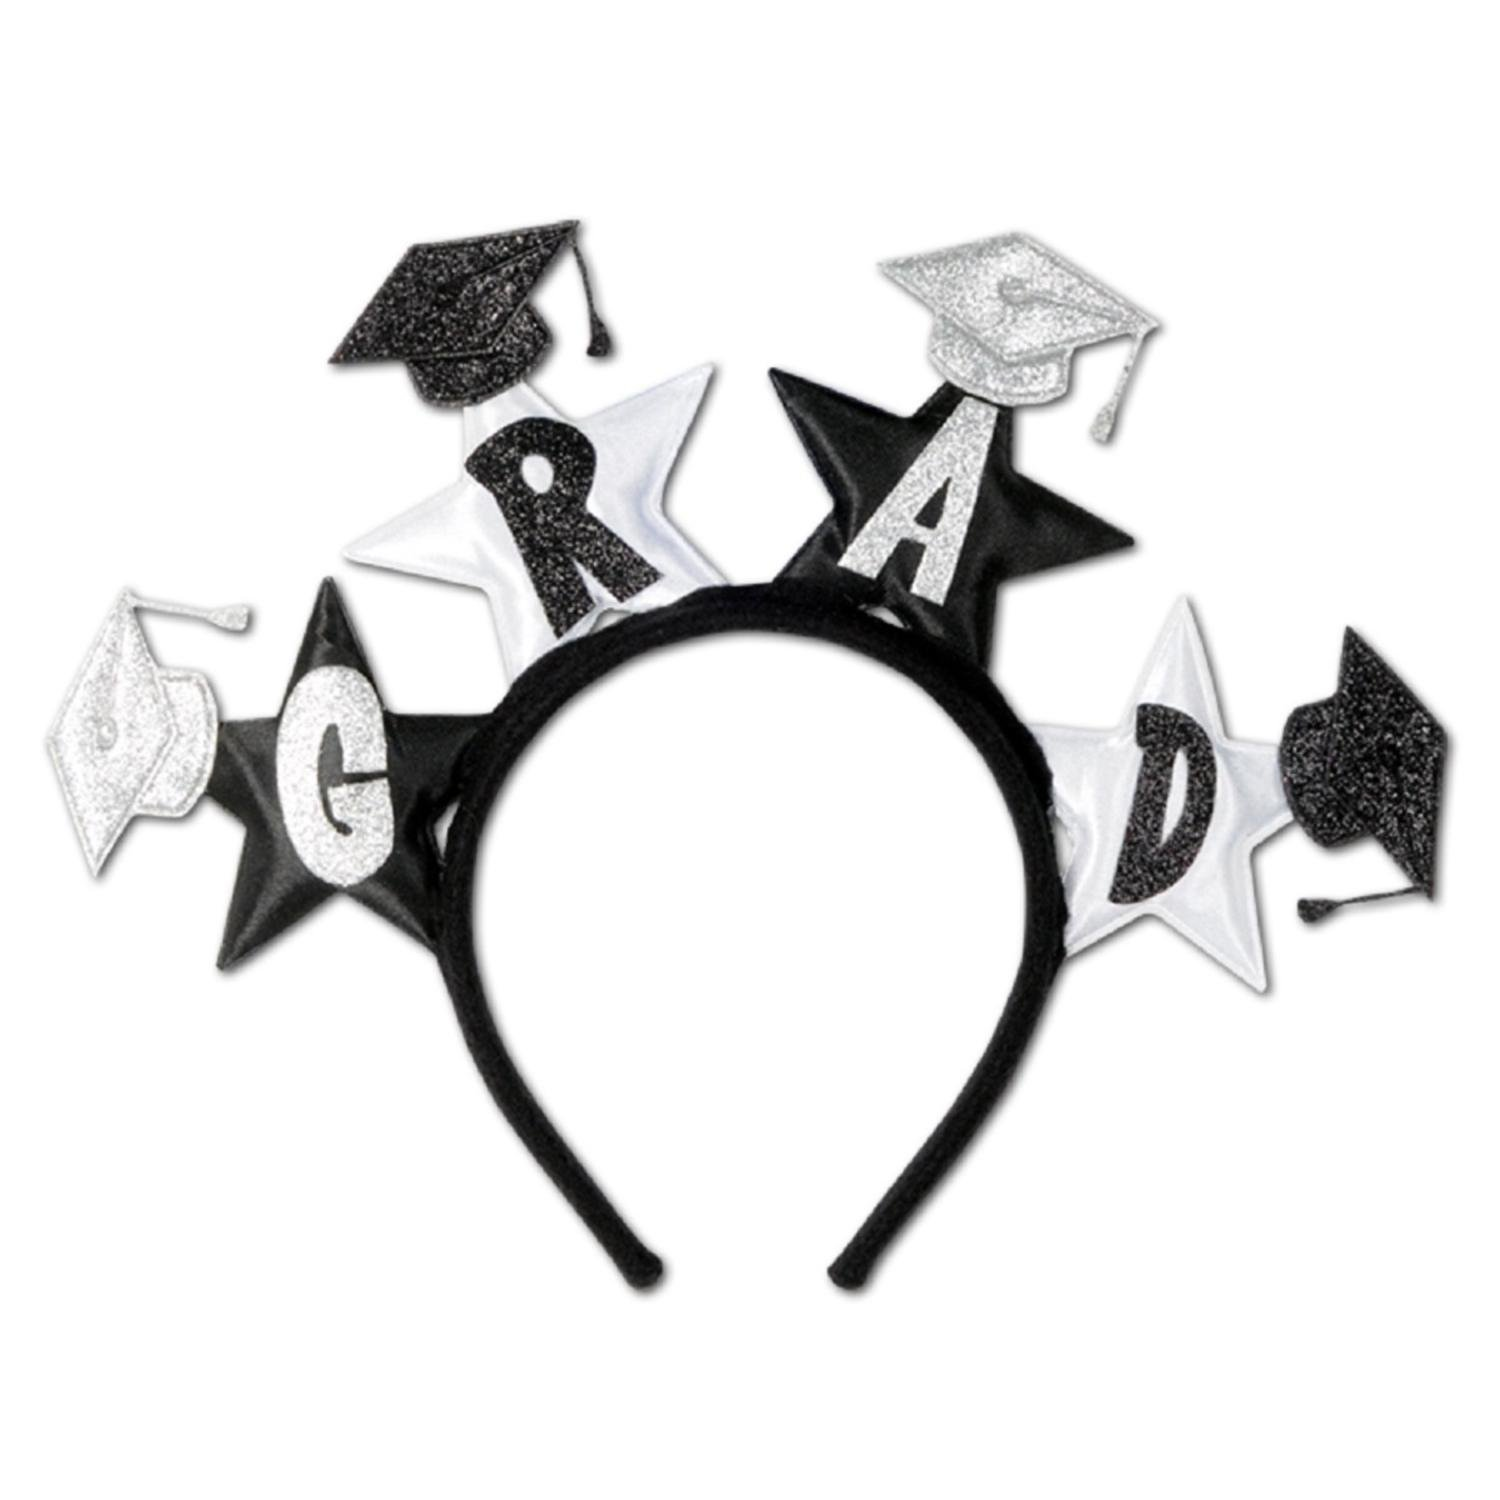 Club Pack of 12 Black and White Glittered Grad Headband Party Favors by Party Central